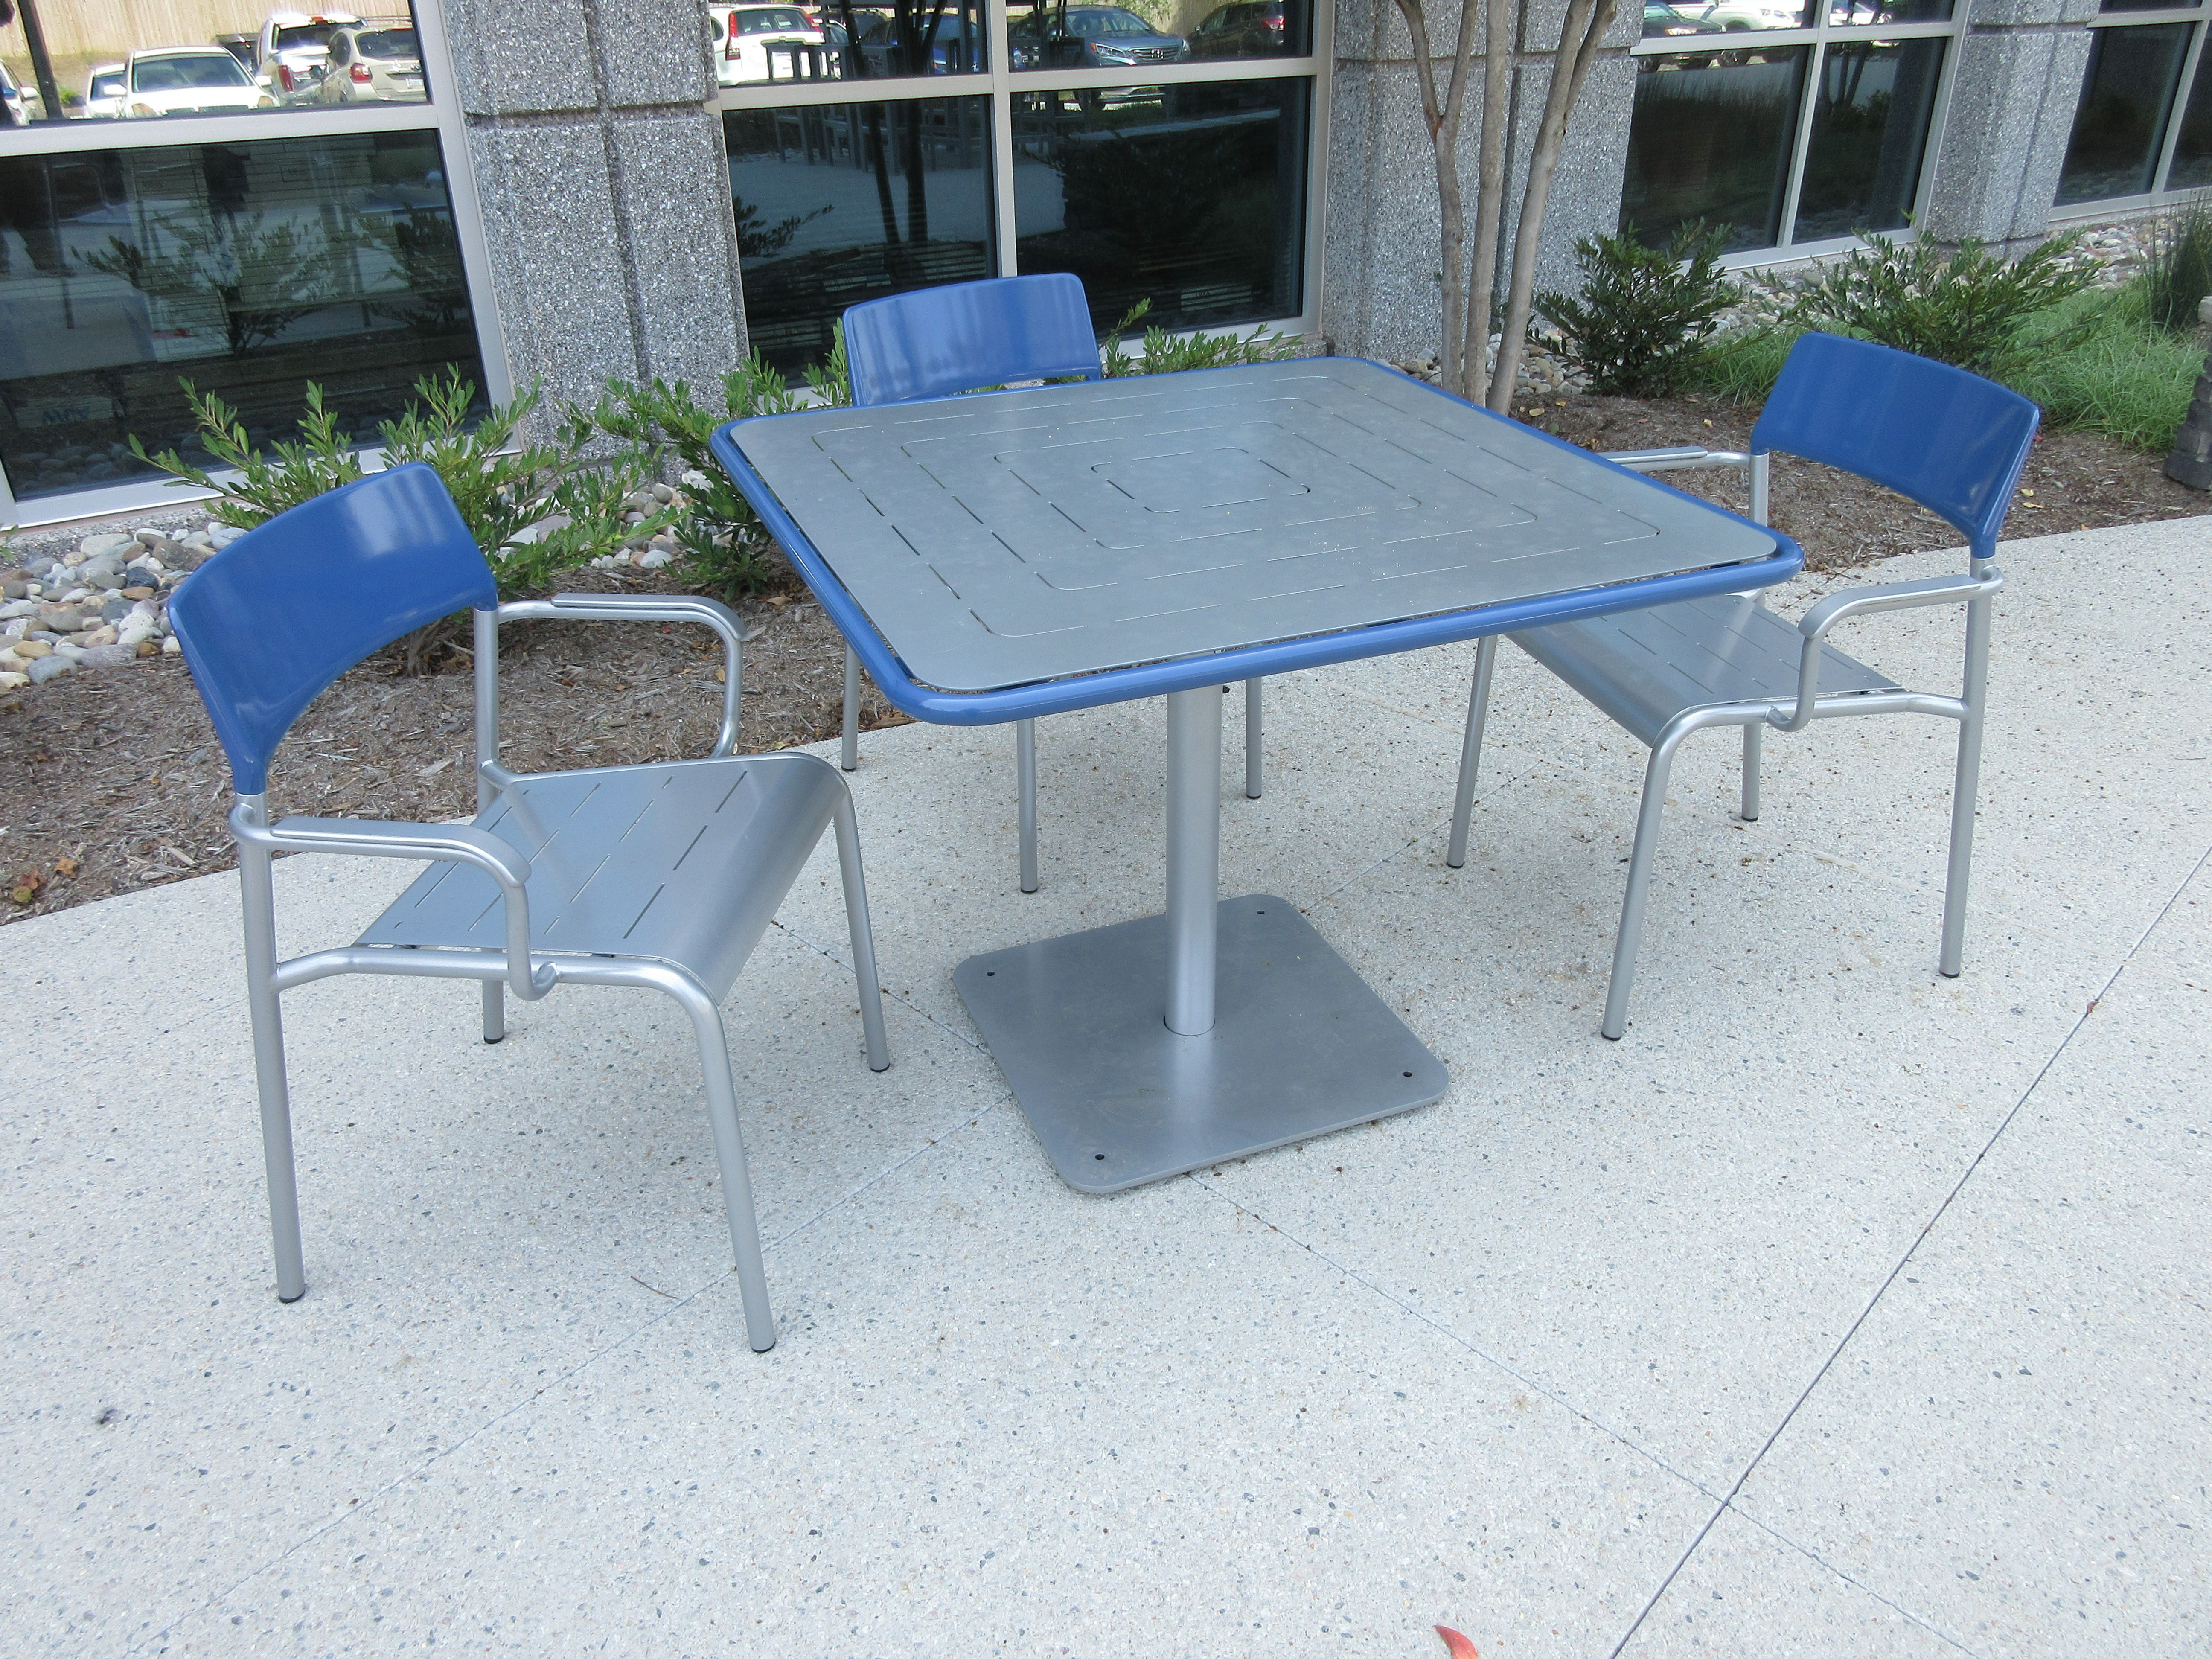 Forty540 Morrisville Nc Square Foro Table With Armed Foro Chairs